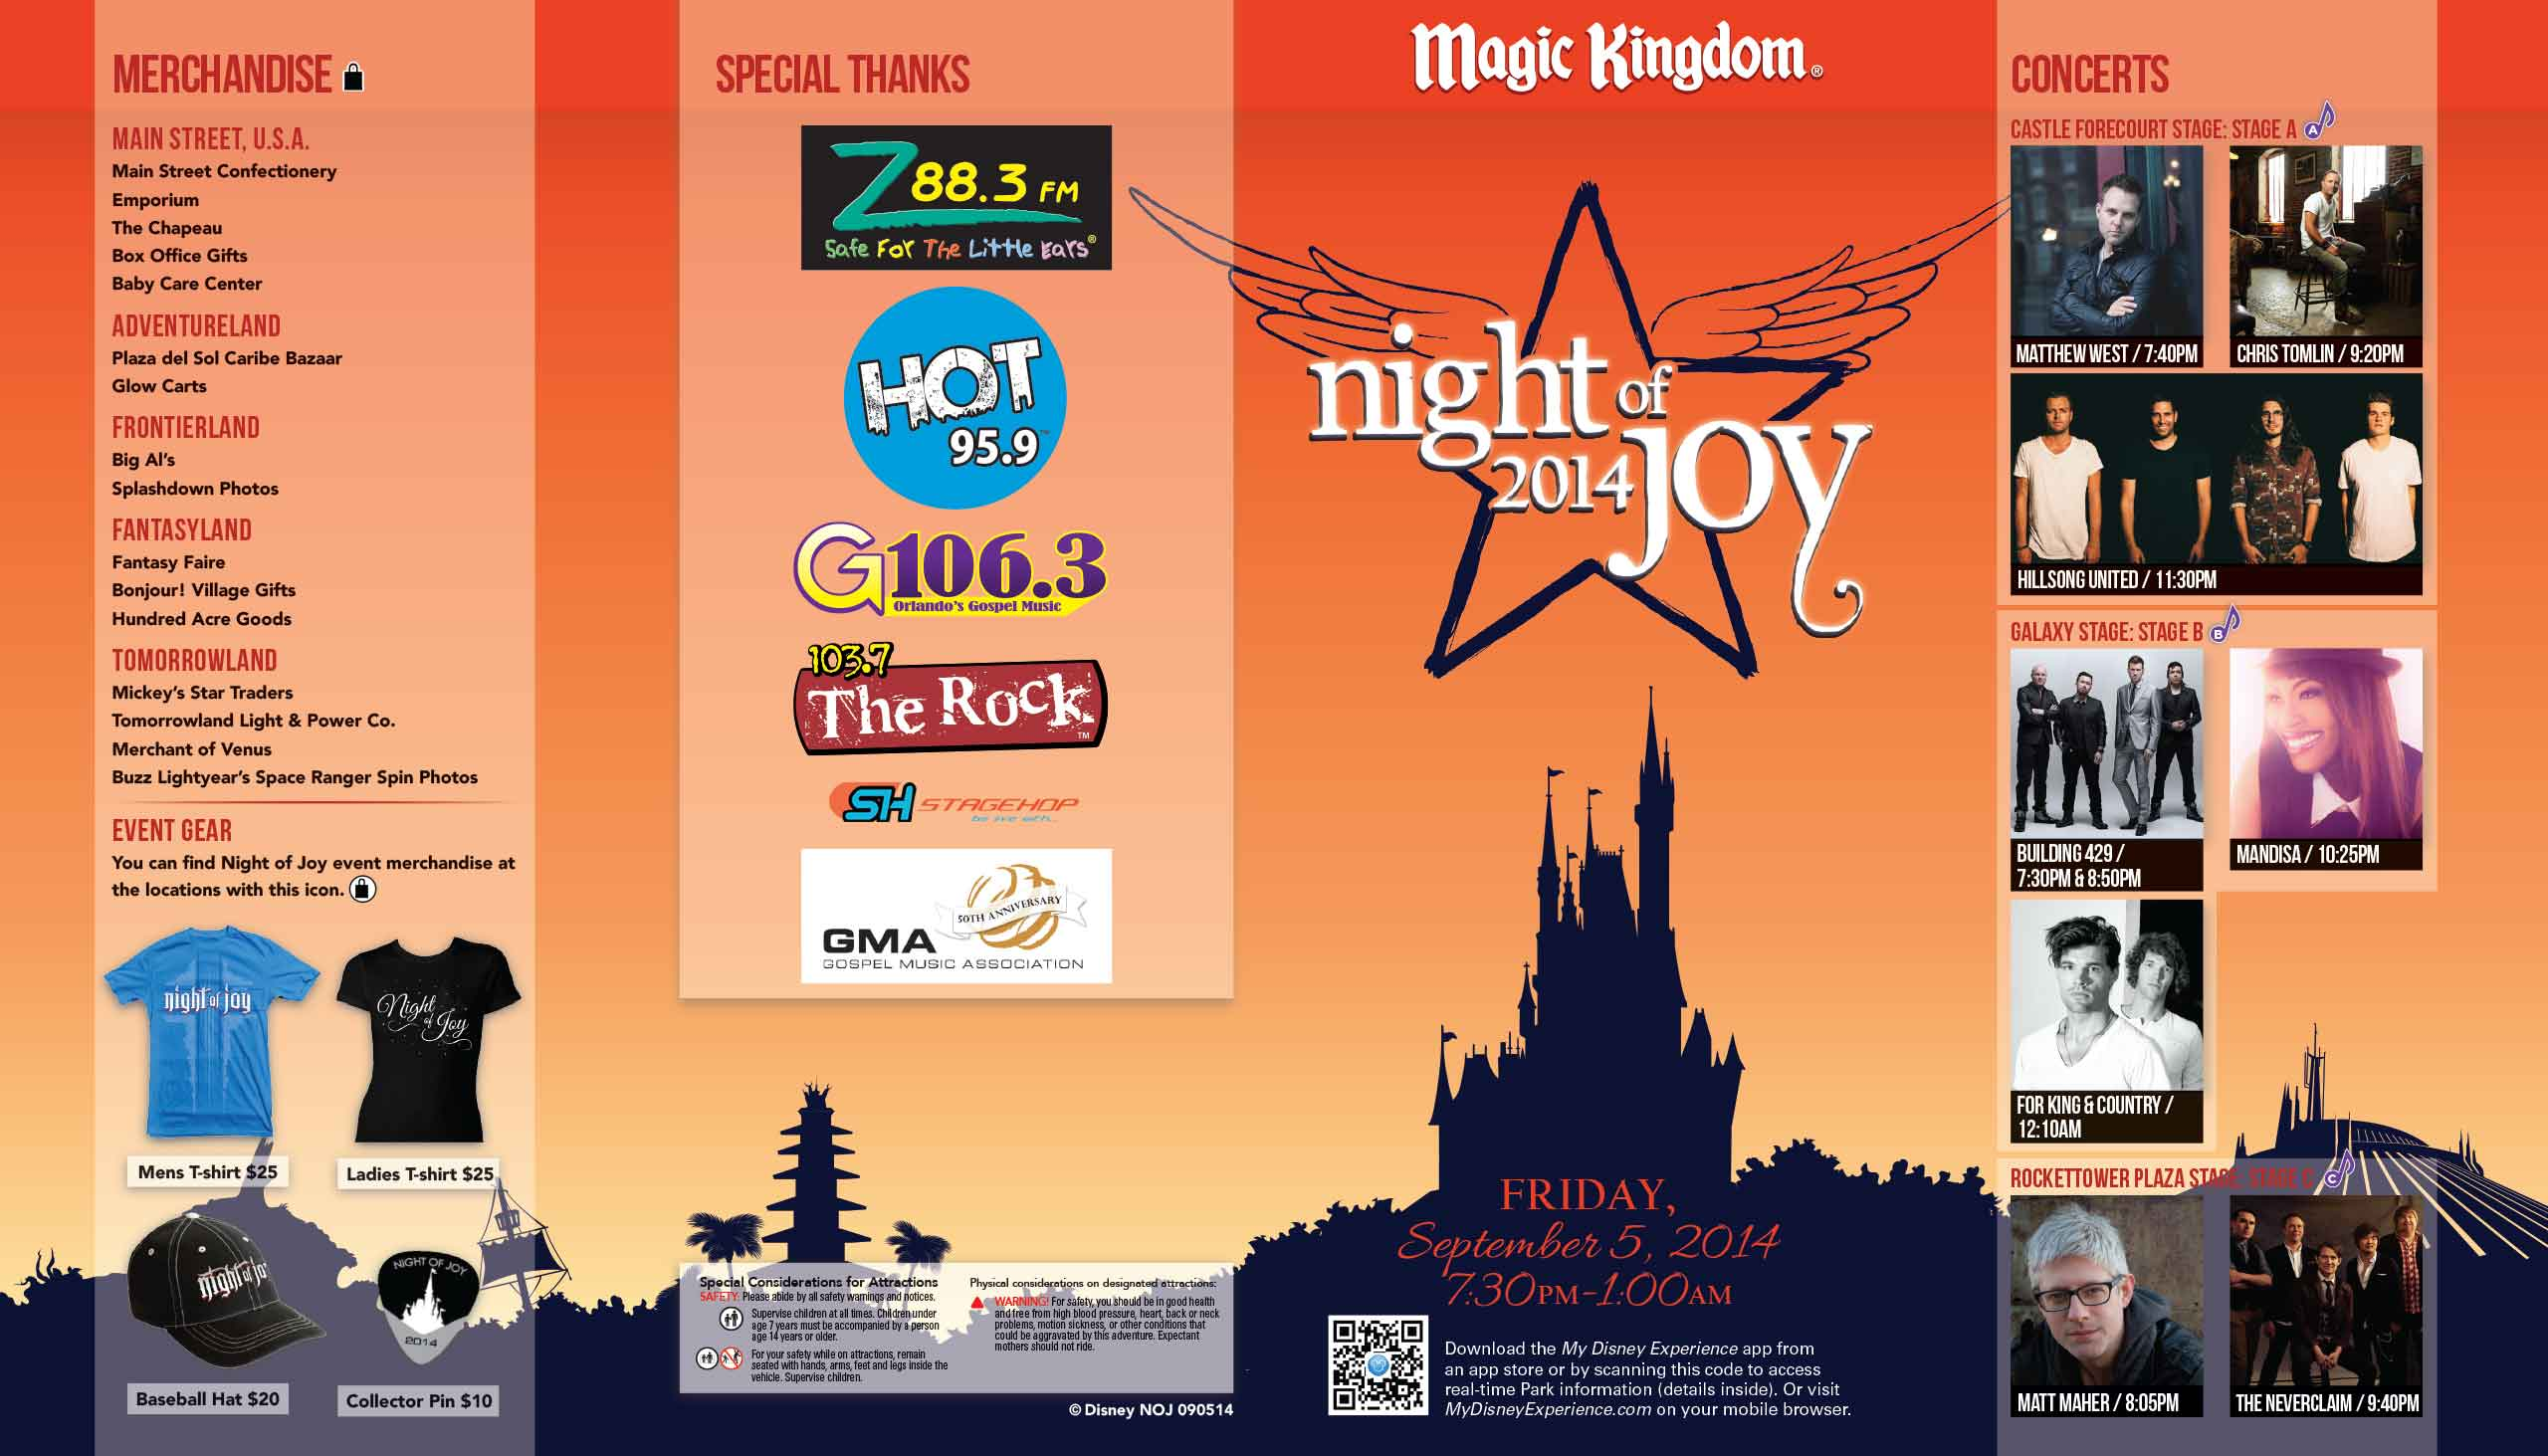 Night of Joy 2014 Guide Map - September 5 2014 front